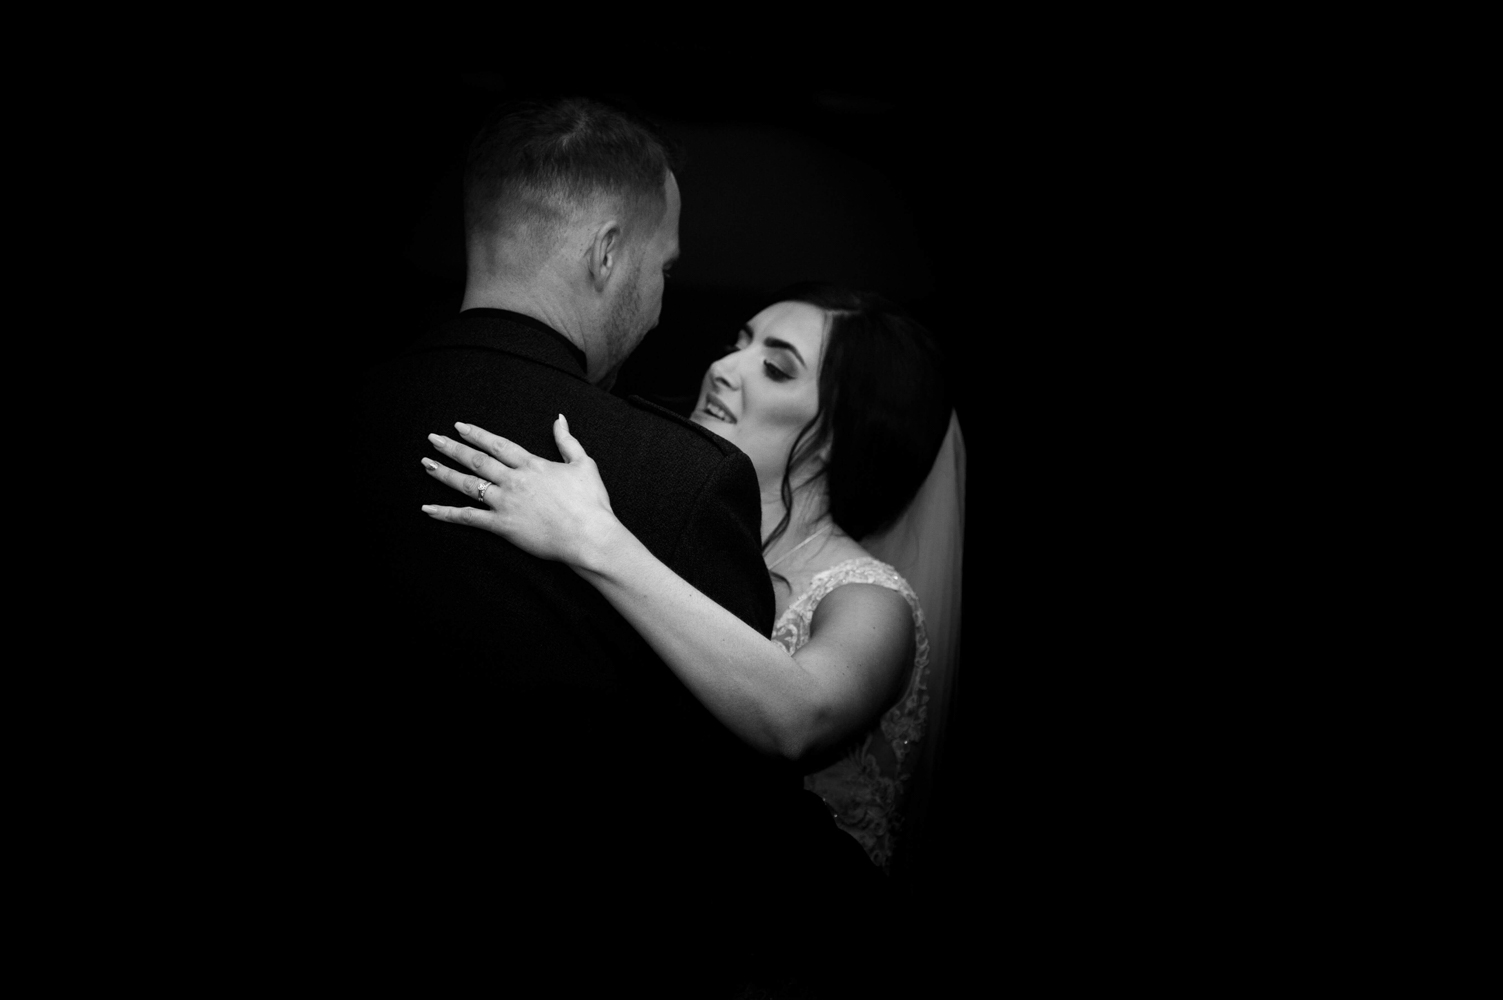 Graham &Nicki Iley - I had the absolute pleasure of capturing the wedding of, Graham and Nicki Iley at the magnificent Western House Hotel, Ayr.